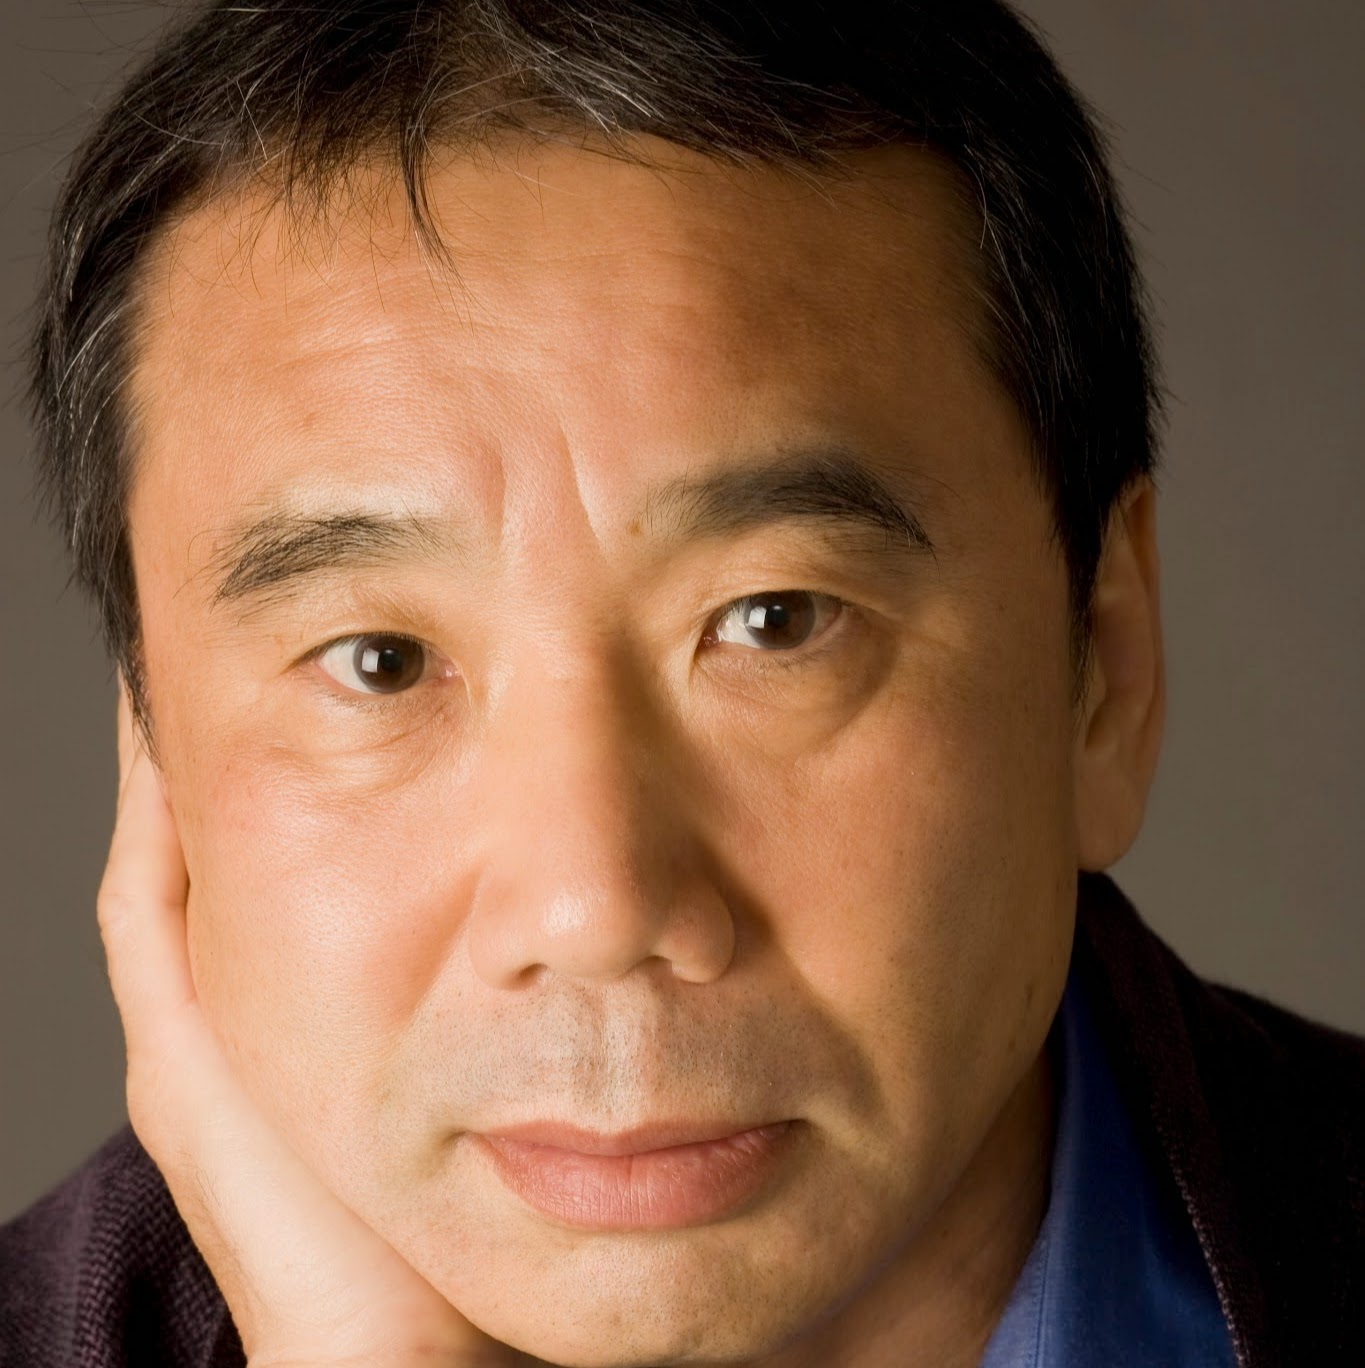 Libros Torrent Epub Haruki Murakami Y Sus Libros Para Descargar Gratis Ebook